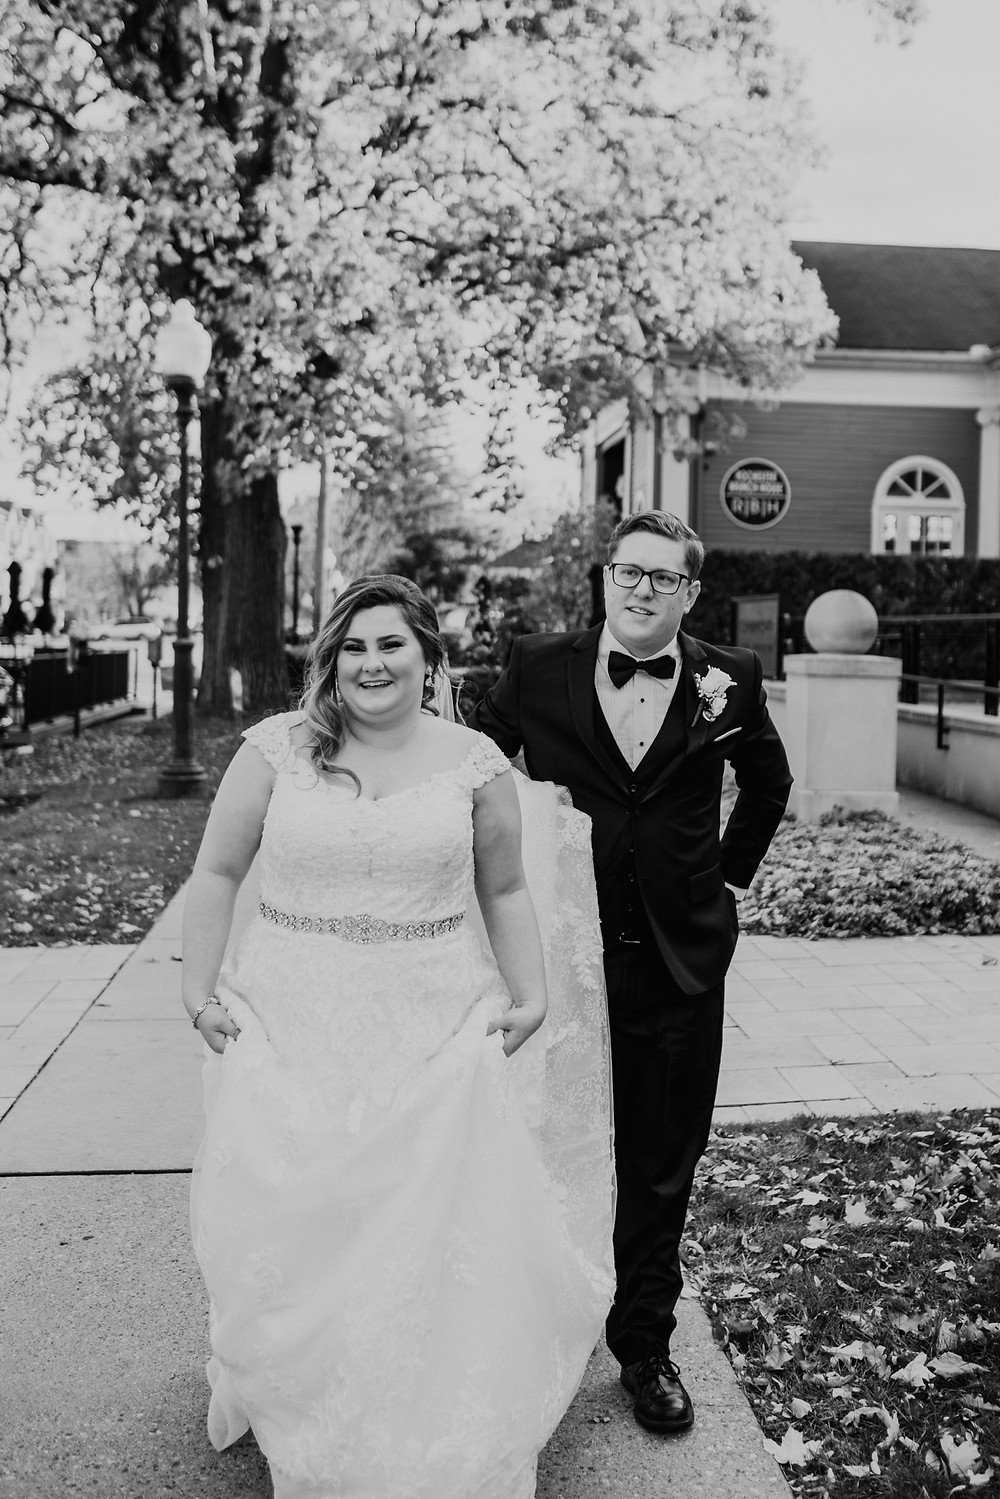 Downtown Rochester wedding photos. Photographed by Nicole Leanne Photography.